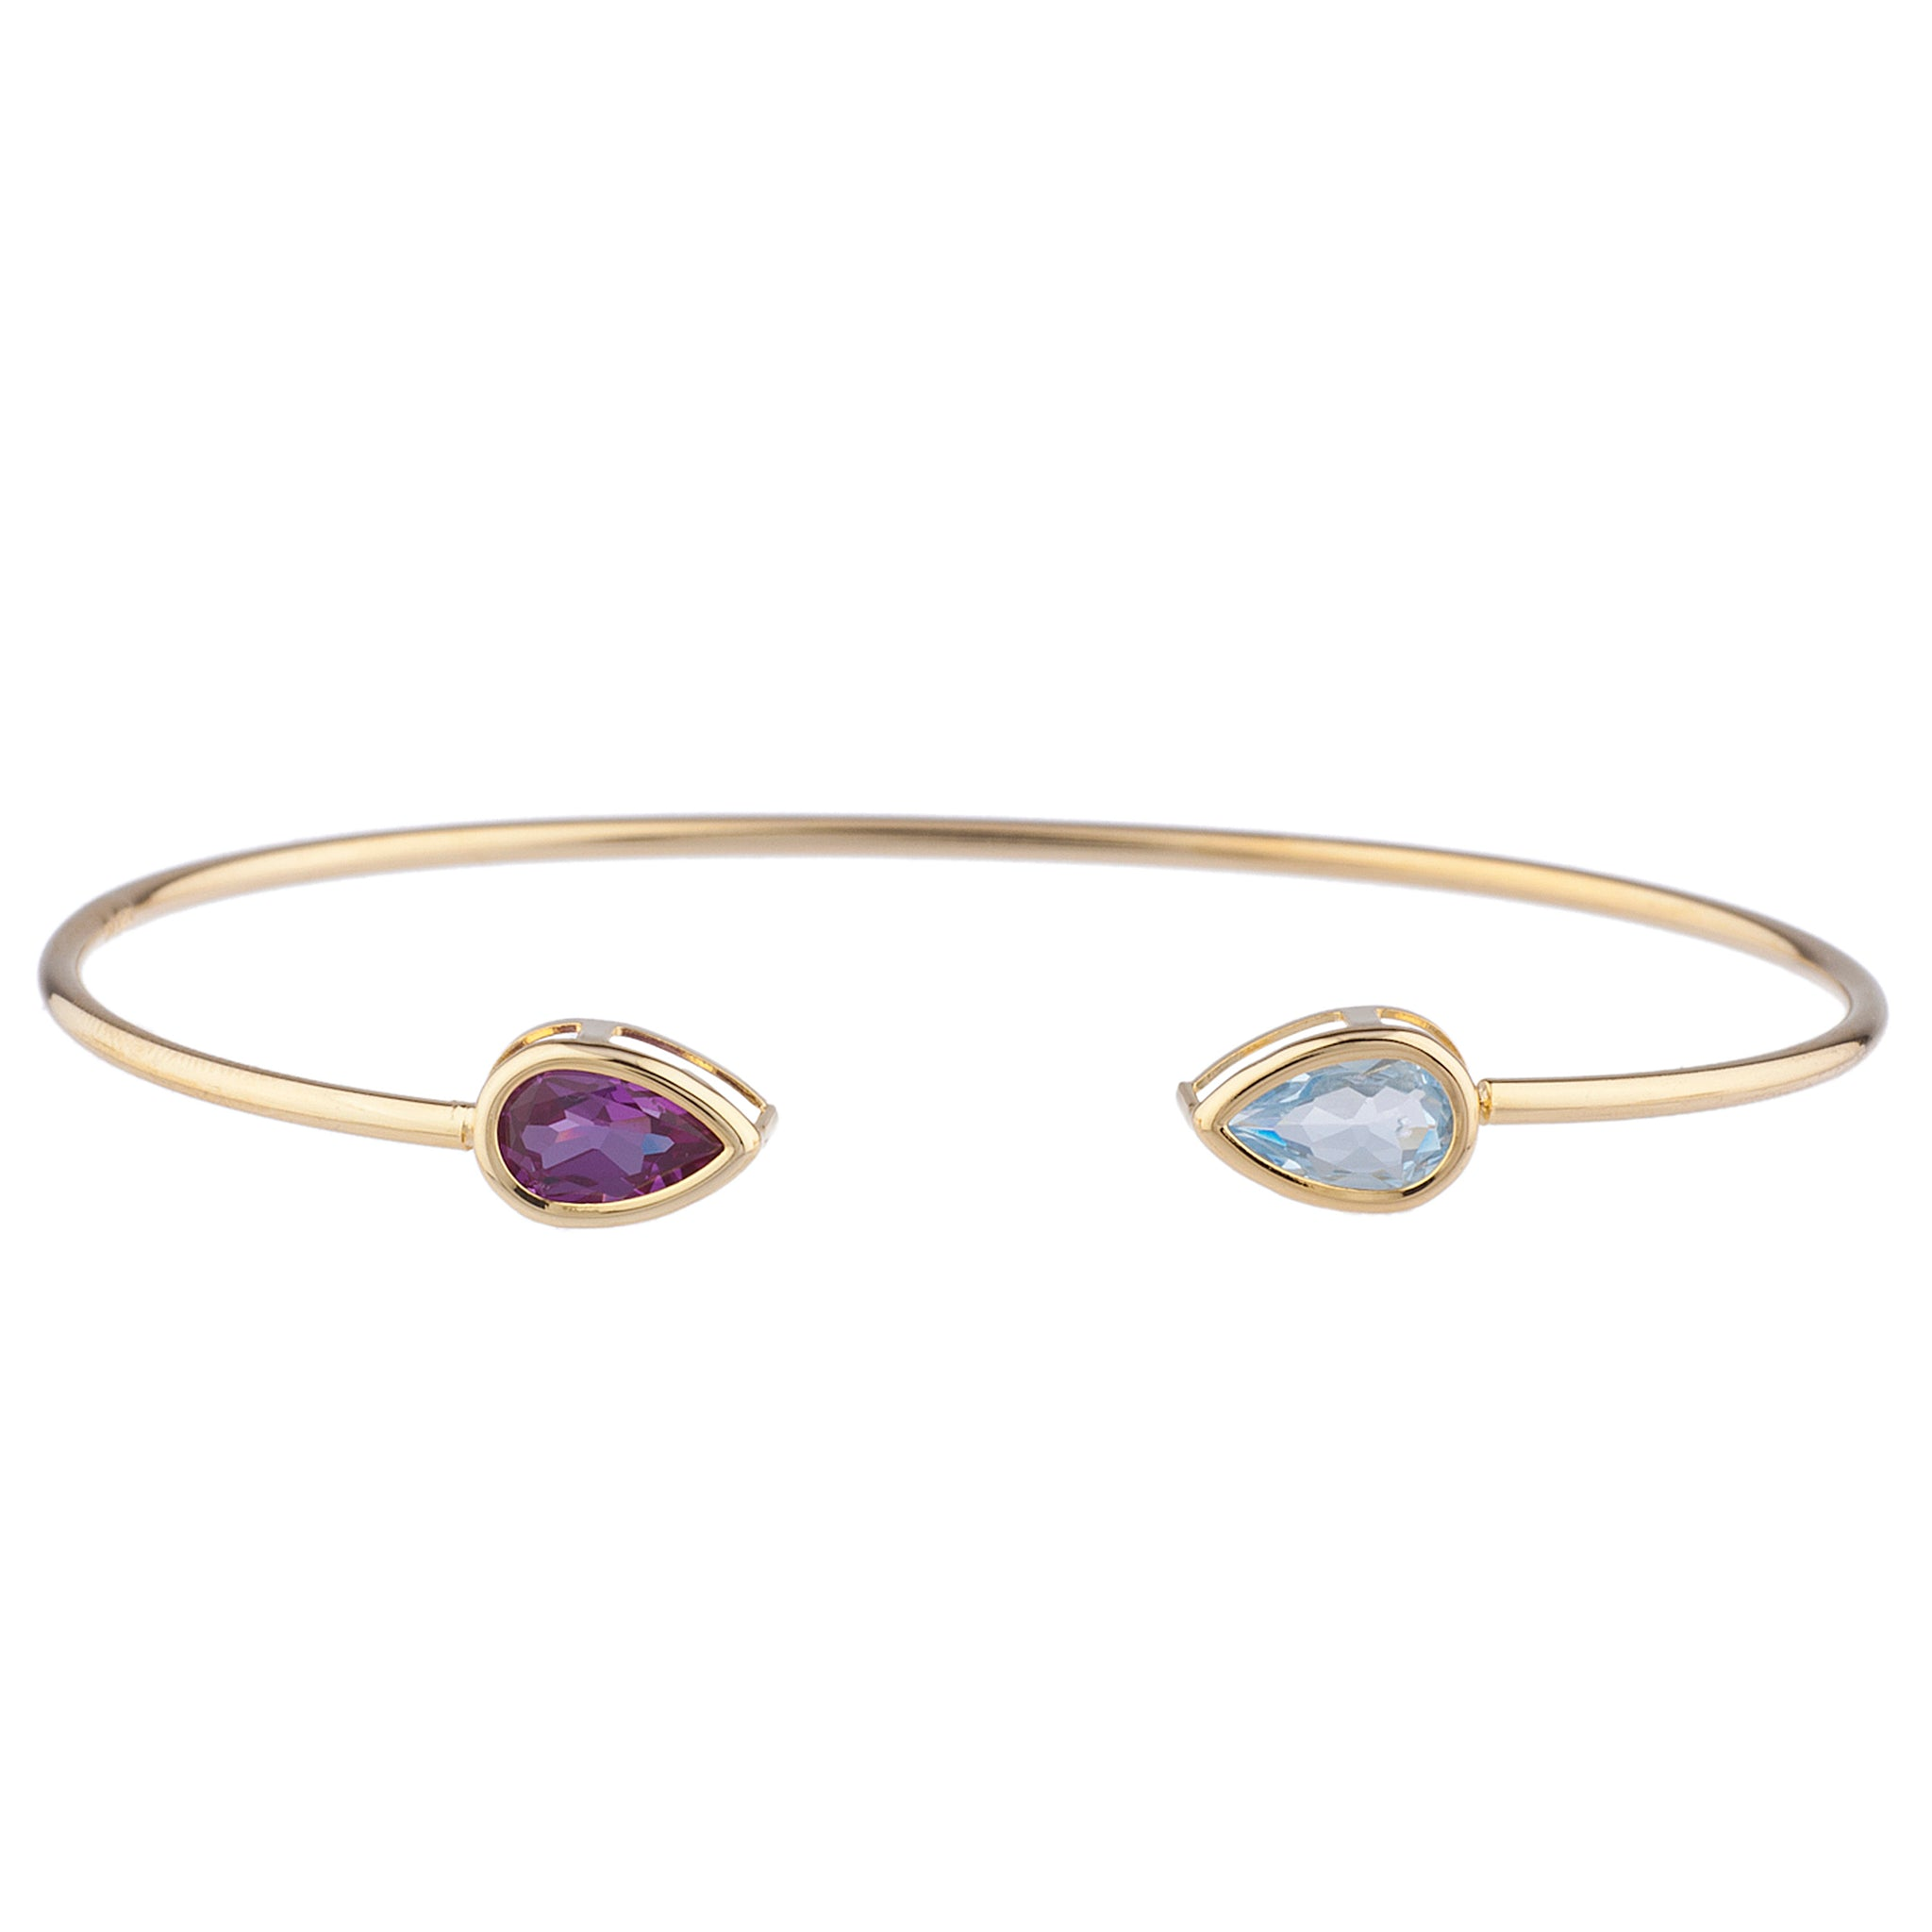 Genuine Aquamarine & Amethyst Pear Bezel Bangle Bracelet 14Kt Yellow Gold Plated Over .925 Sterling Silver